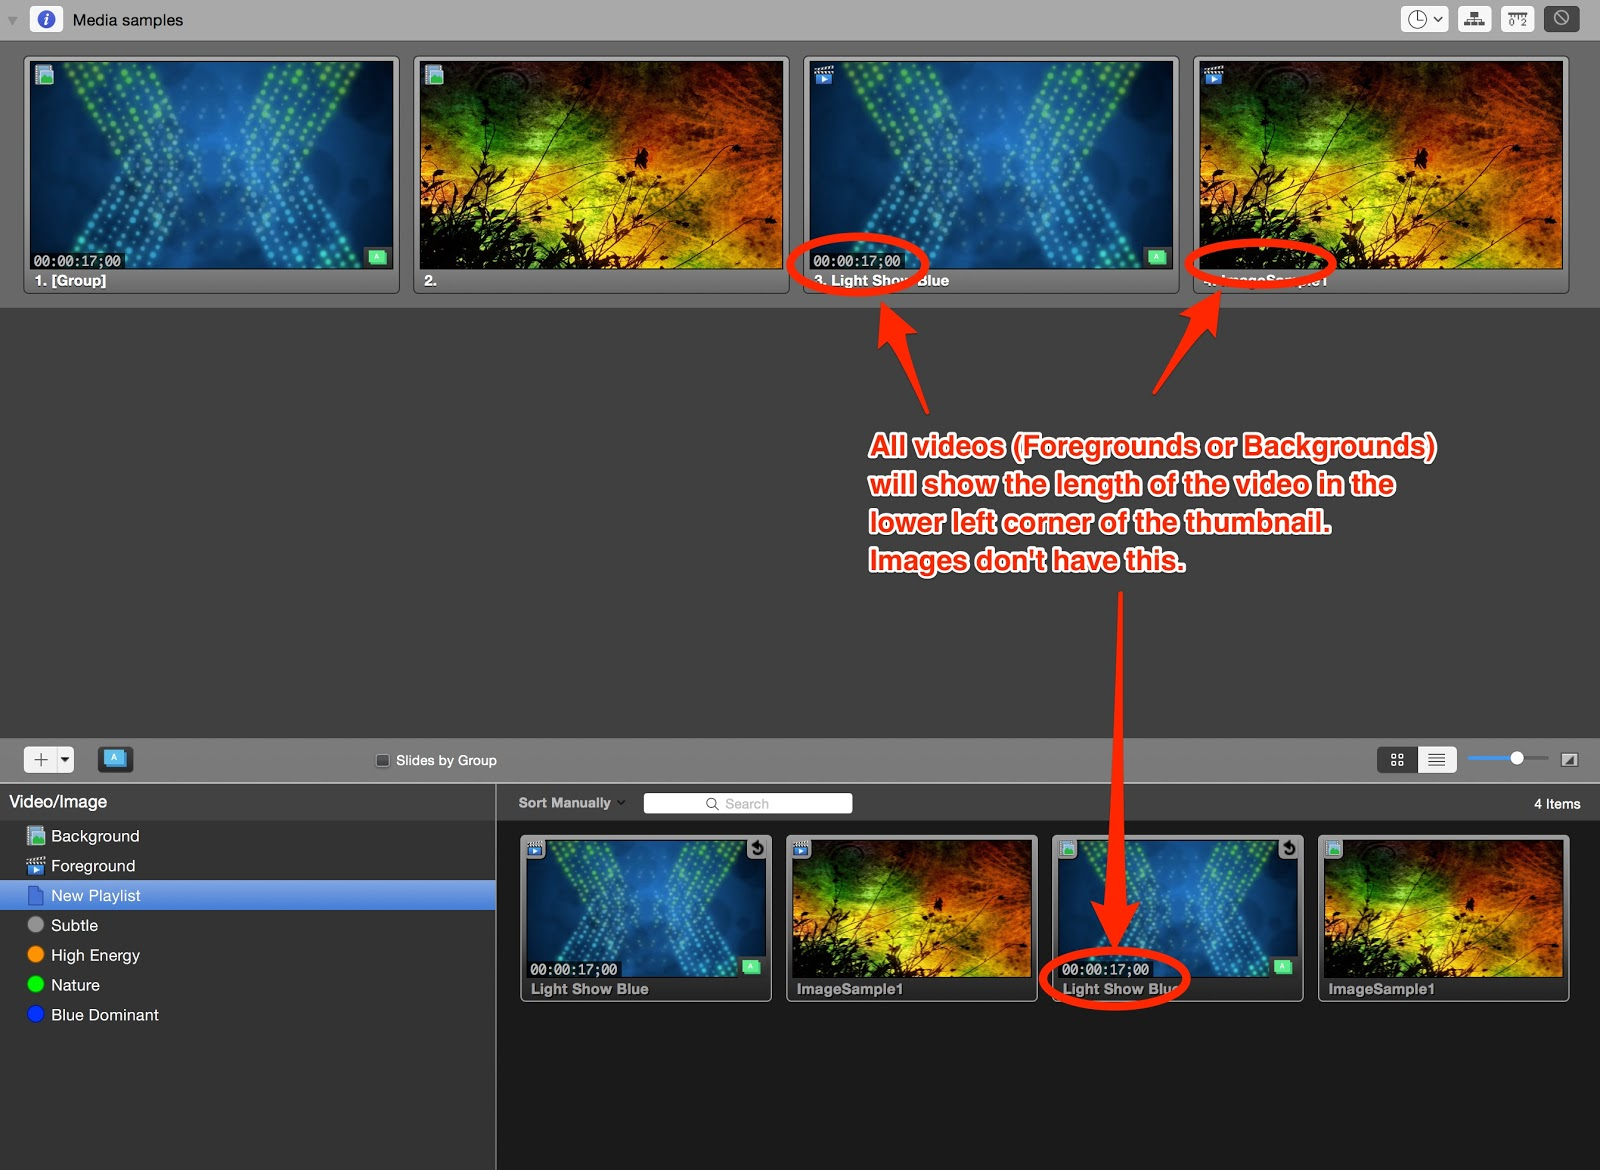 How can I tell if a media cue is a video or still image? – Renewed